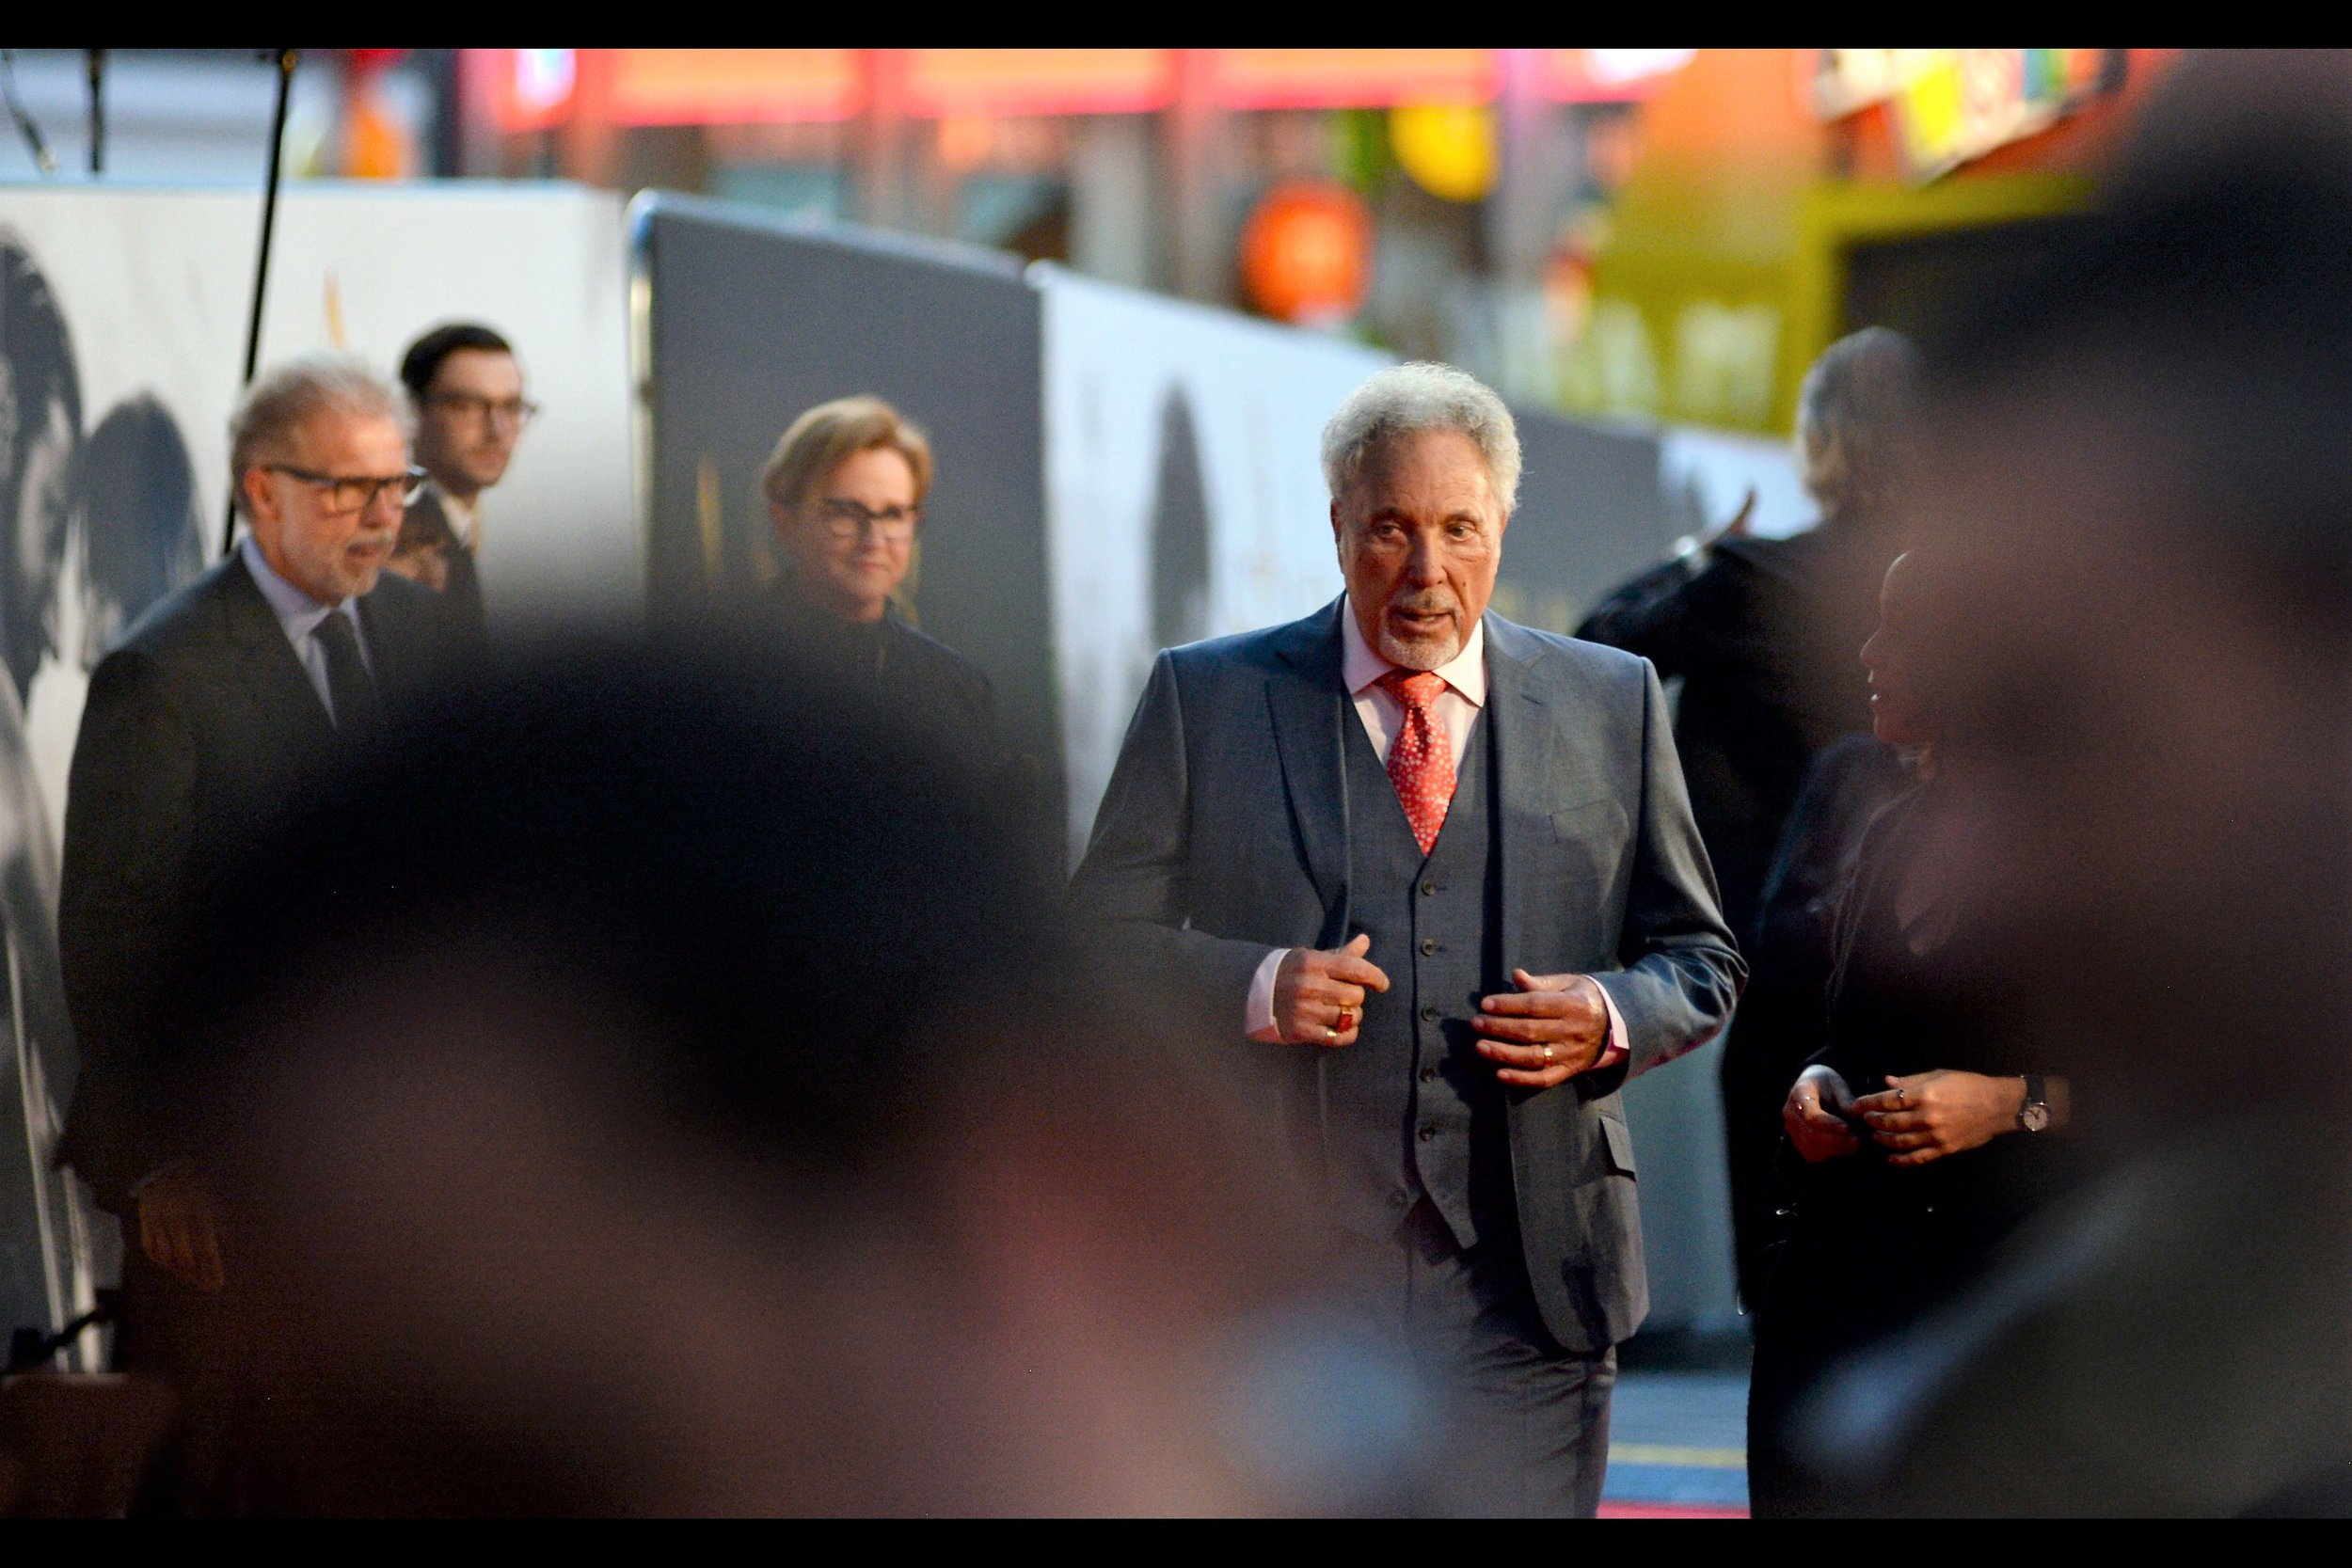 It's Tom Jones! He's best known for being Welsh Singer Tom Jones - recipient of a knighthood and also a Grammy Award Winner… for best new artist in 1966, in a career that has subsequently spanned six decades.